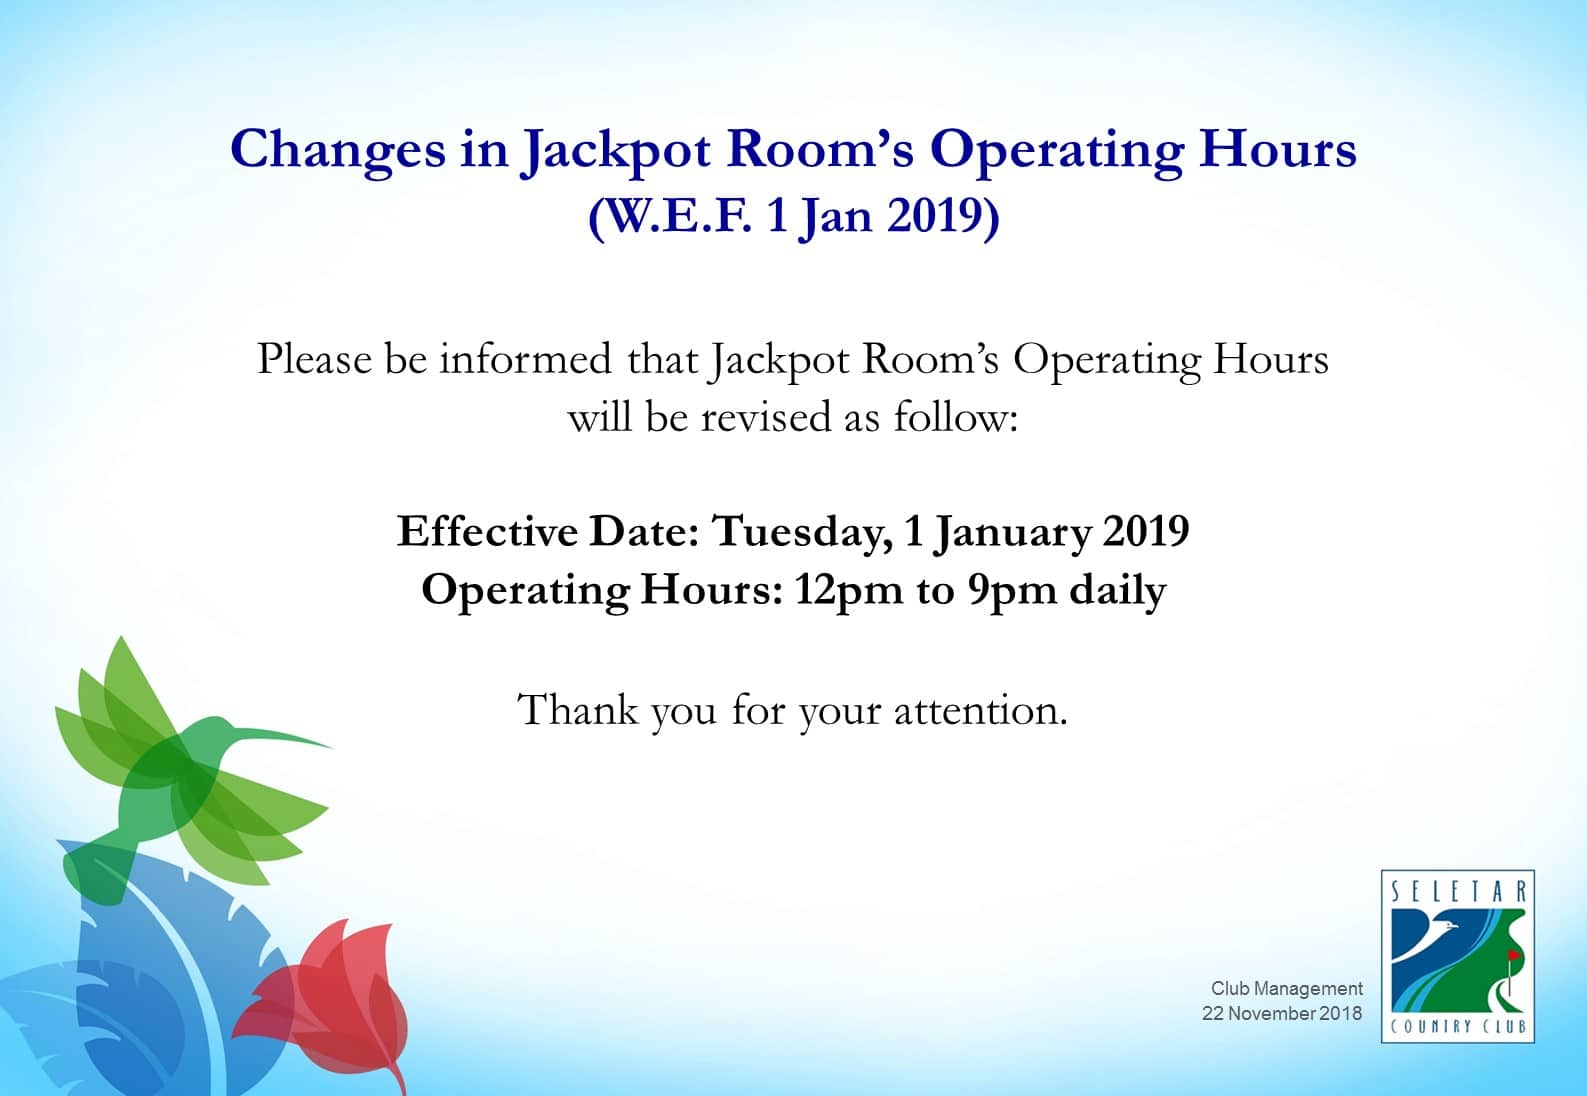 Jackpot Room's Operating Hours (1 Jan 2019 onwards)